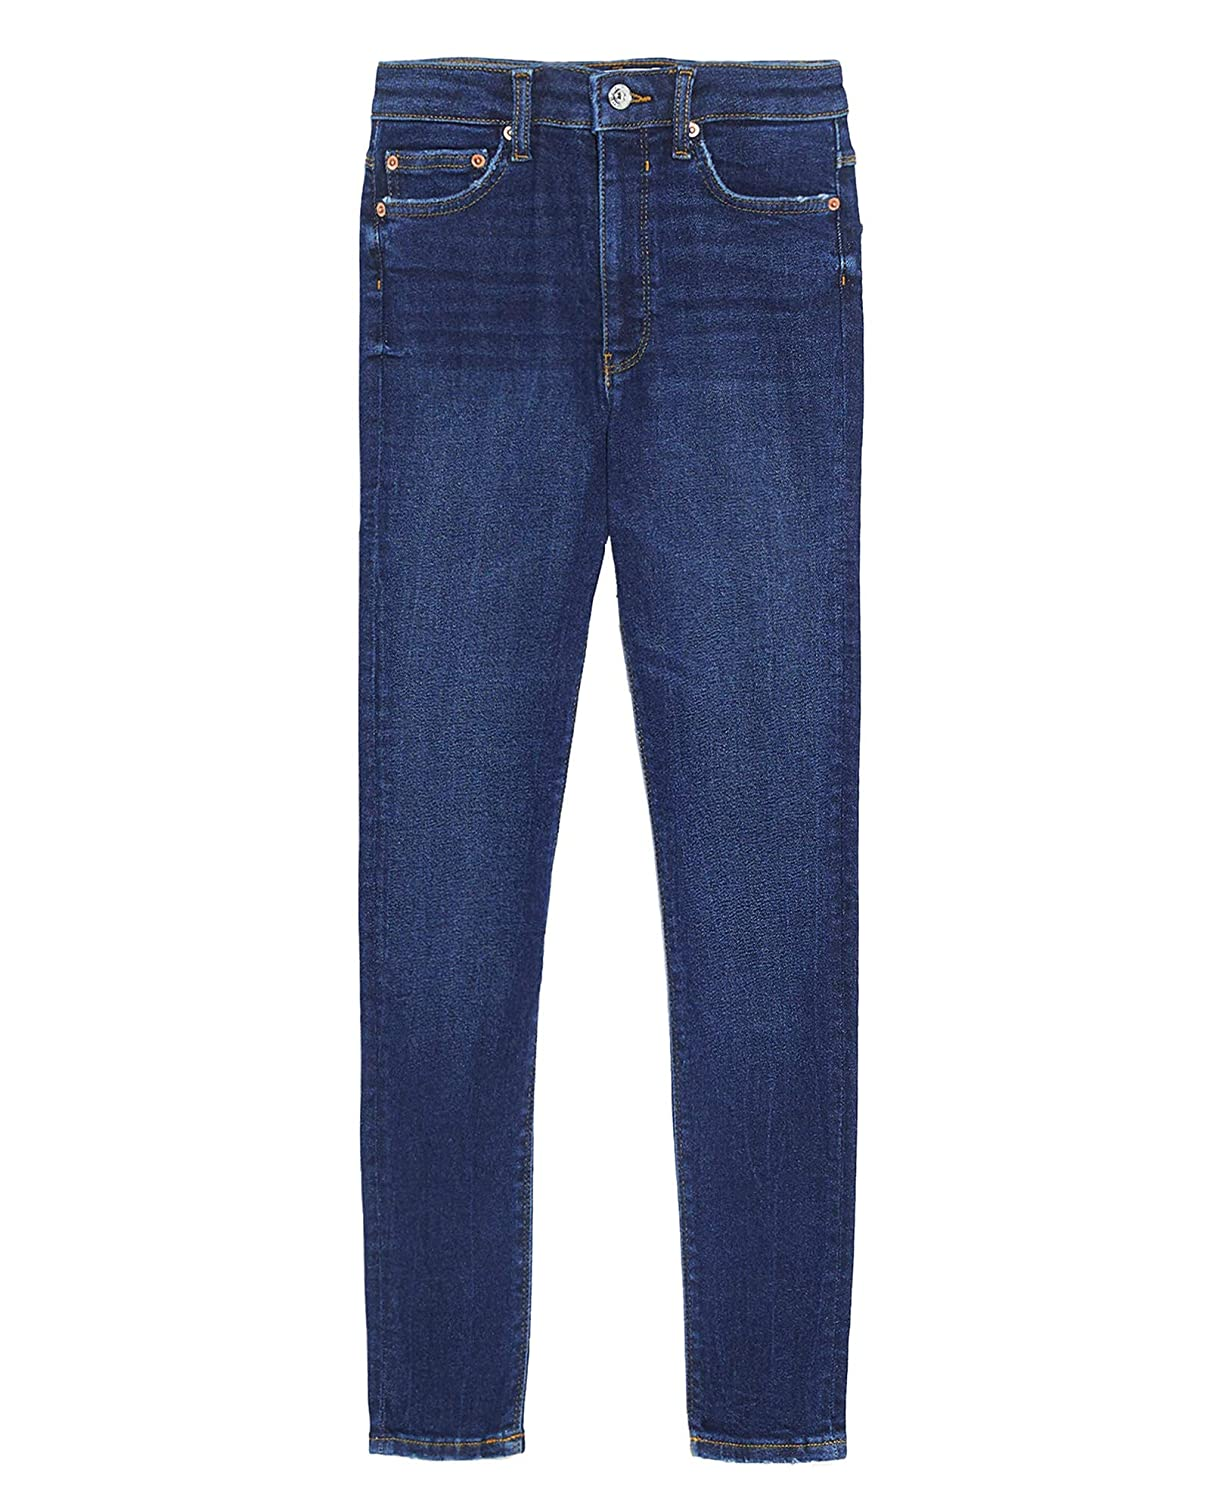 d255fdd5 Zara Women's Jeans zw Premium 80 s deep Blue 8246/049: Amazon.co.uk:  Clothing